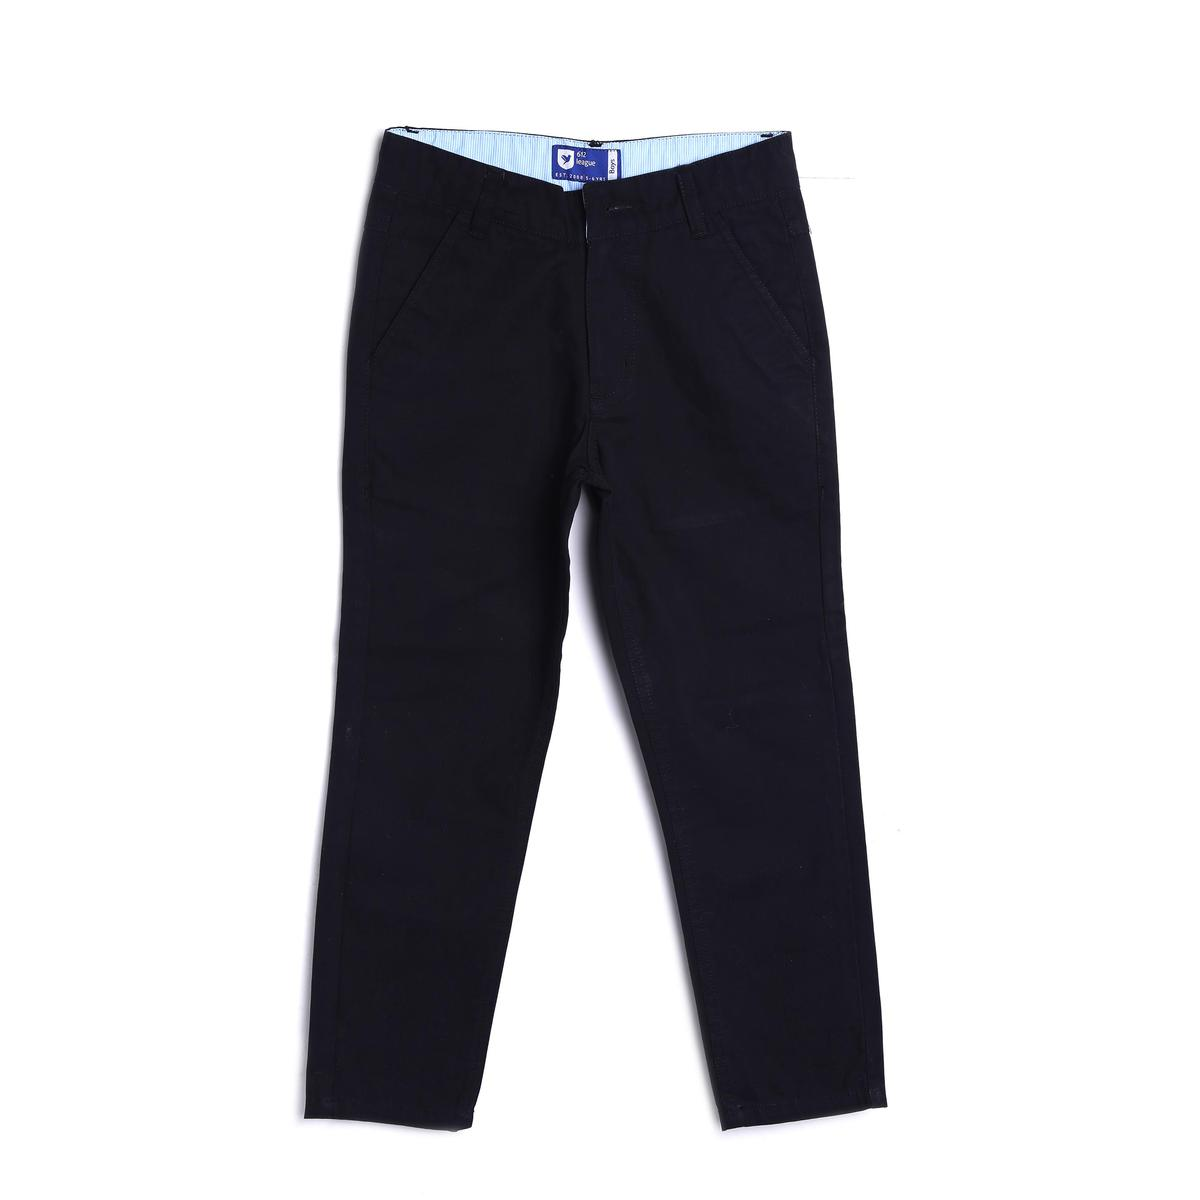 612 League - Black Colored Straight Basic Twill Trouser For Boys